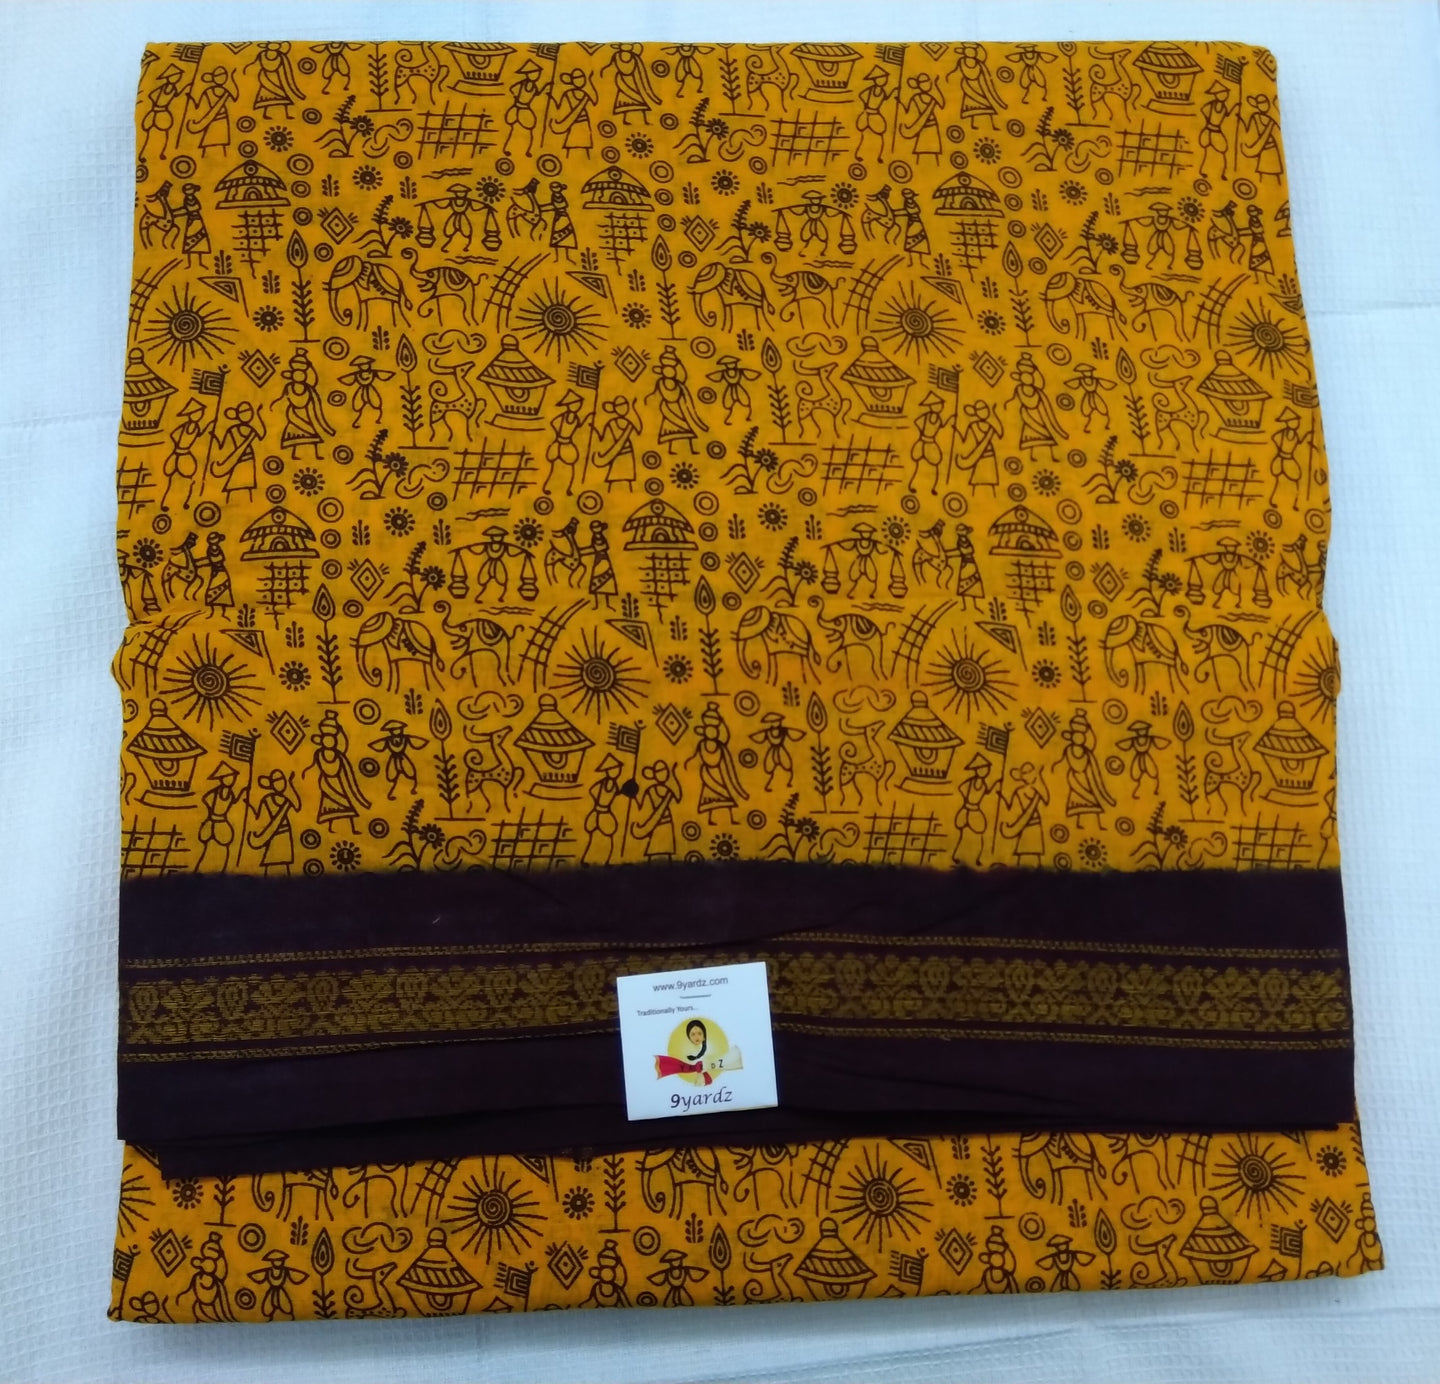 Kanchi Cotton Warali 9.5 yardz